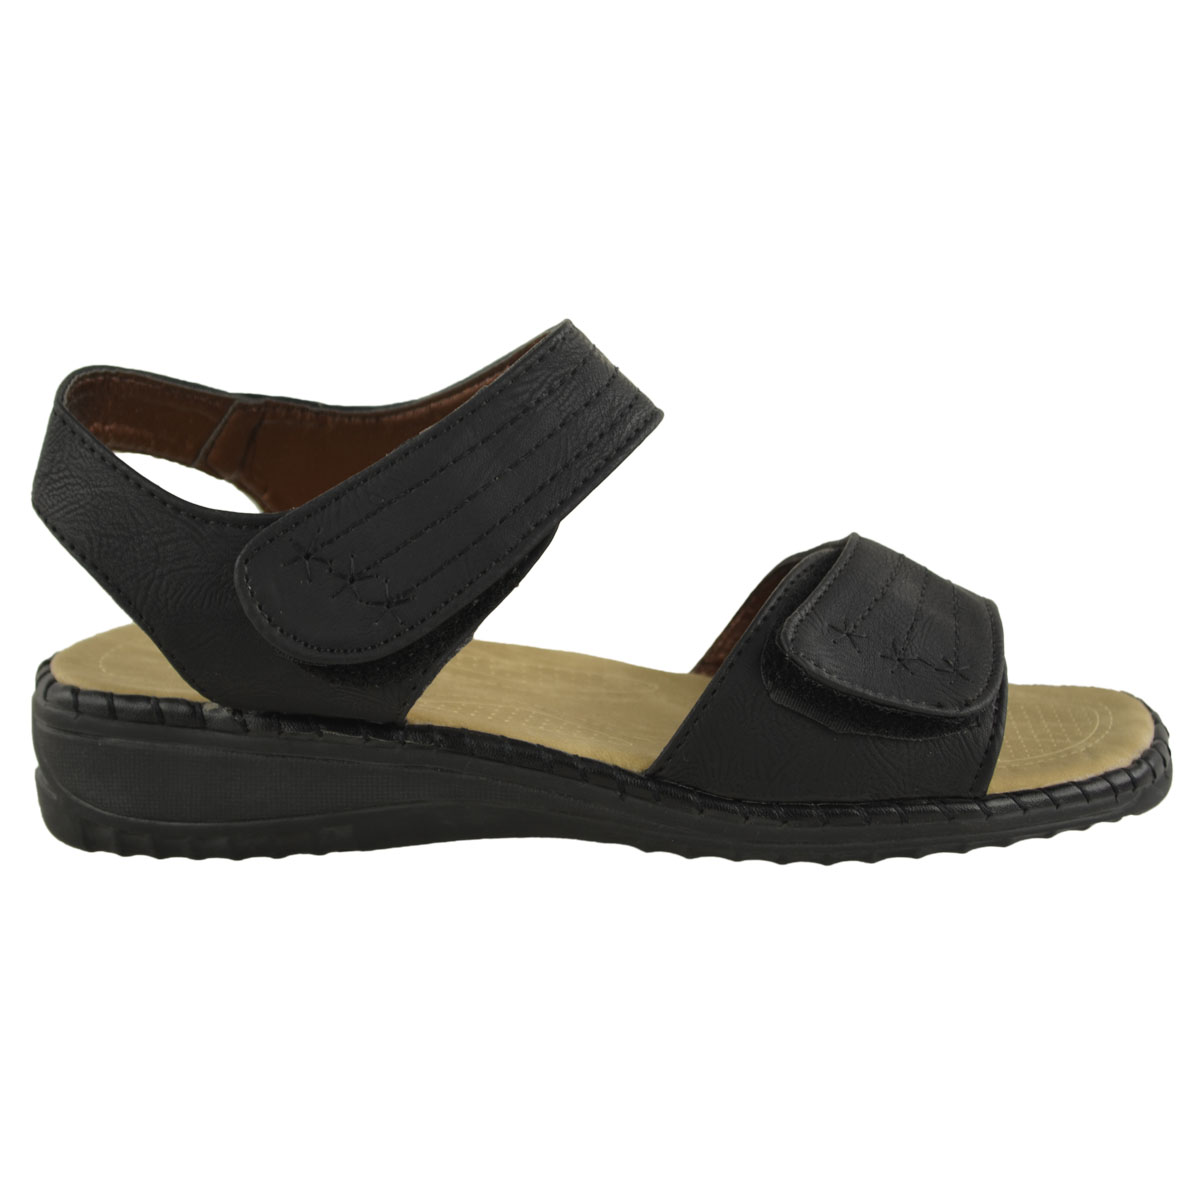 Model  Sandals  Josef Seibel  Josef Seibel Debra Velcro Womens Sandals